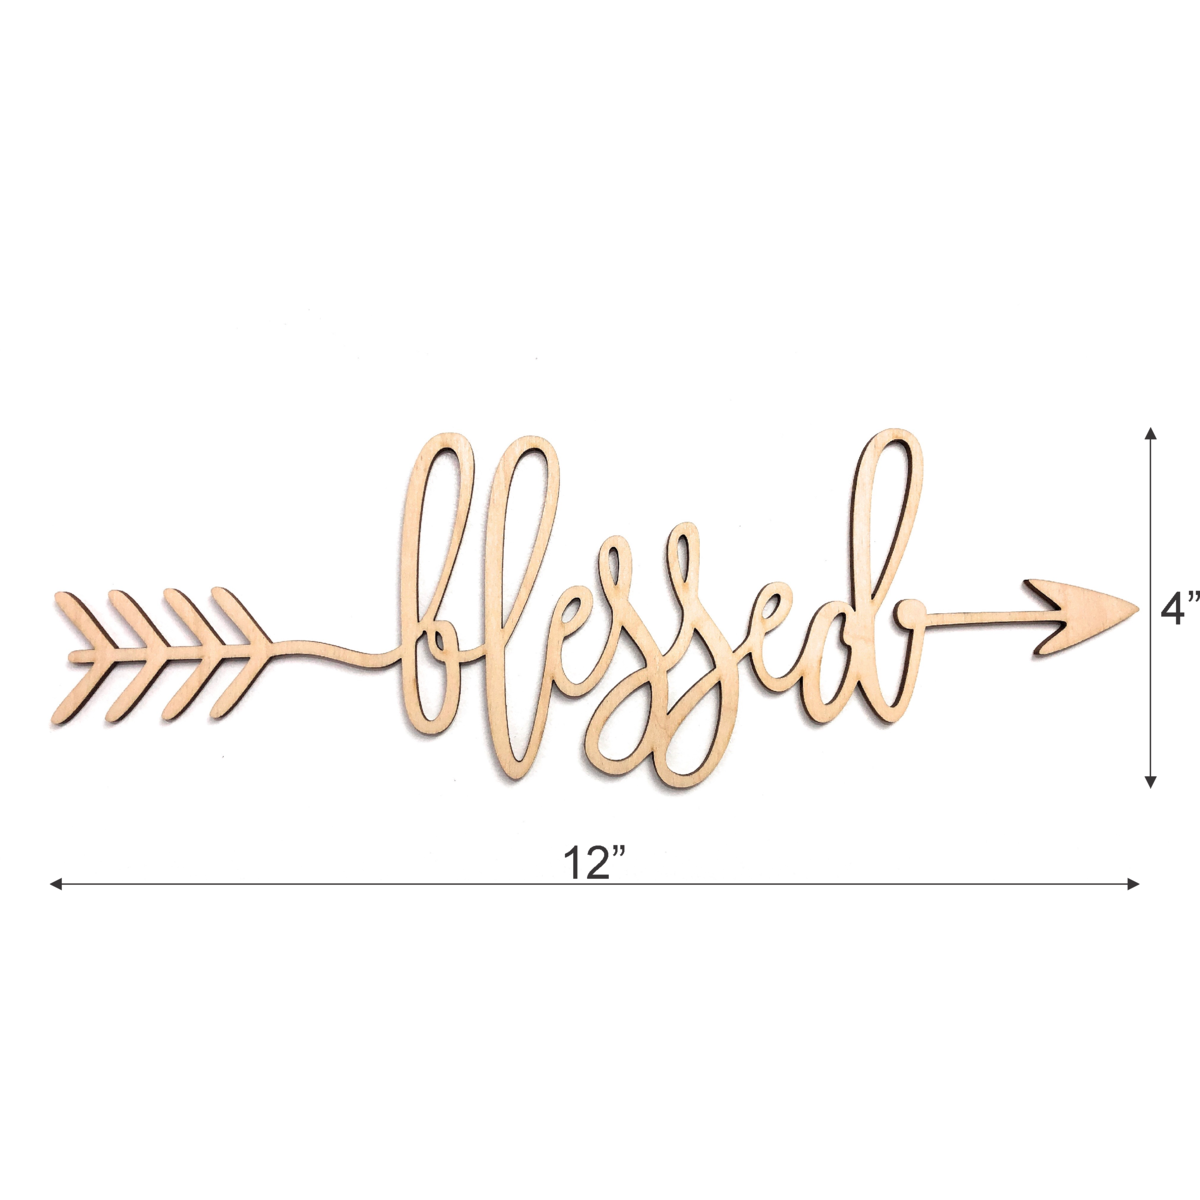 SDF ART - Blessed Wooden Sign - Wall Décor - Home Decoration for Living Room Bedroom - Rustic Wood Decor (Blessed, 12 inches Wide x 4 inches Tall)